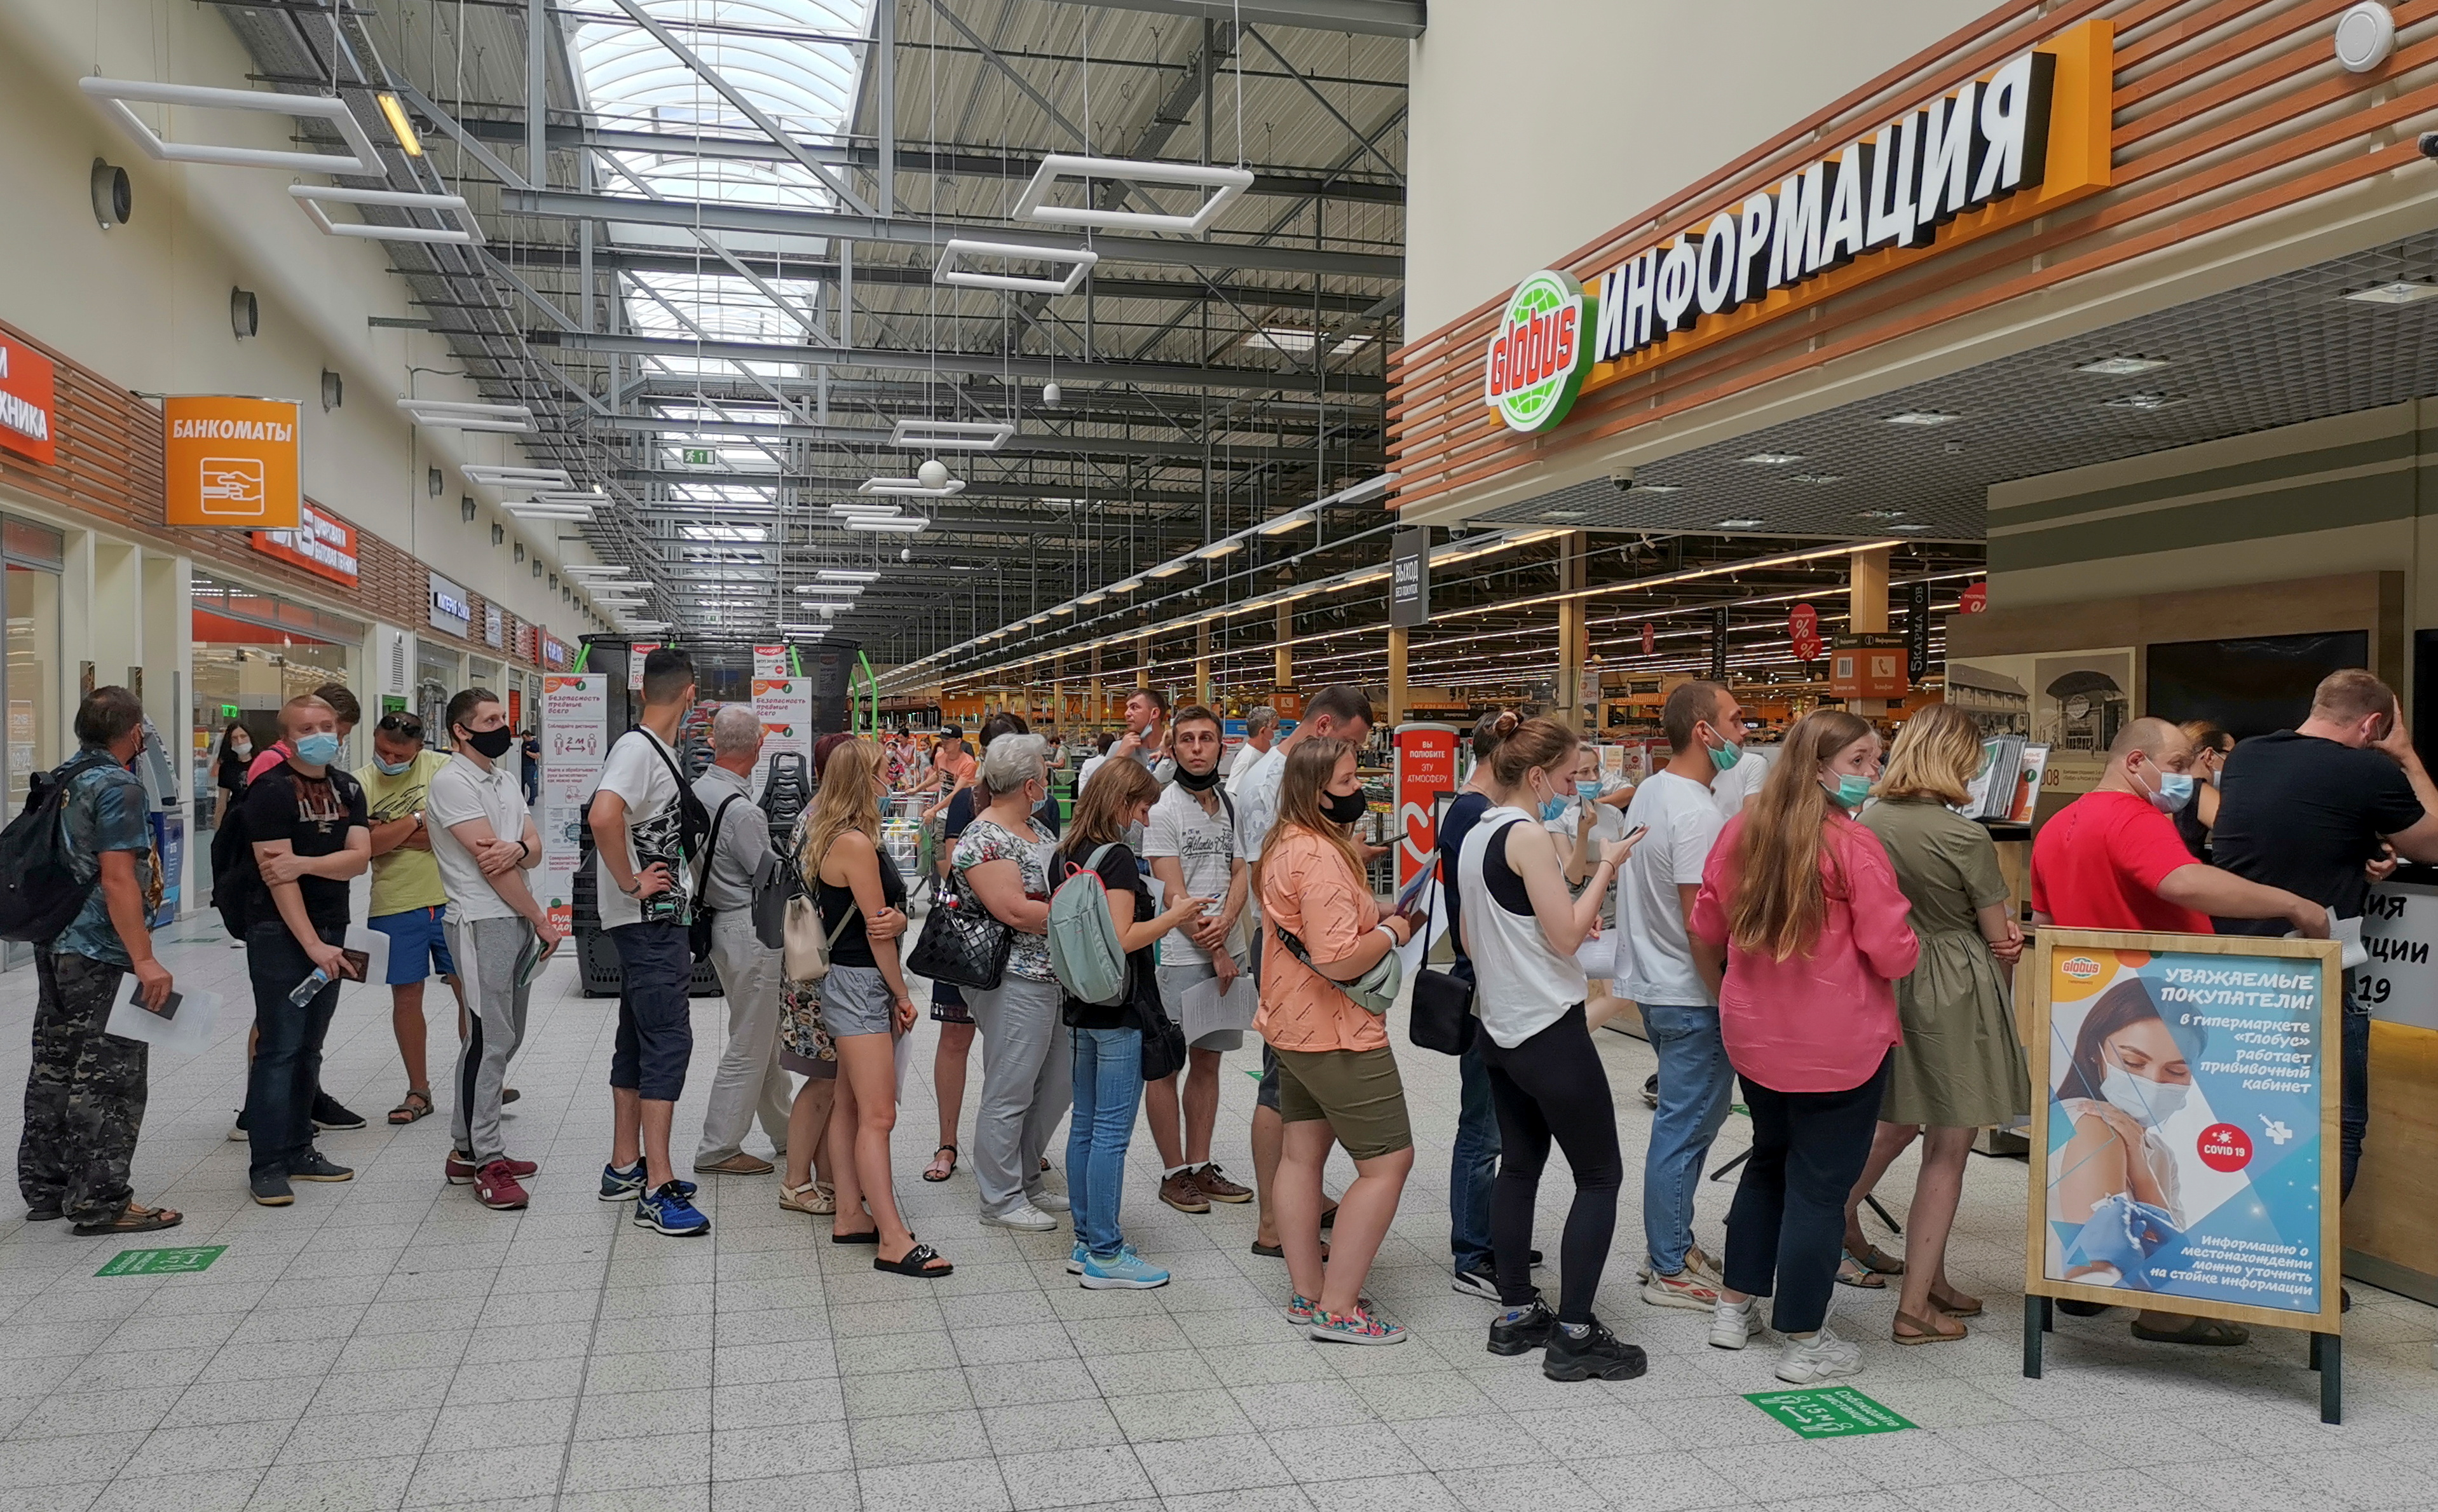 People line up to receive vaccine against the coronavirus disease (COVID-19) at a vaccination centre in the Globus shopping mall in Vladimir, Russia July 15, 2021. REUTERS/Polina Nikolskaya